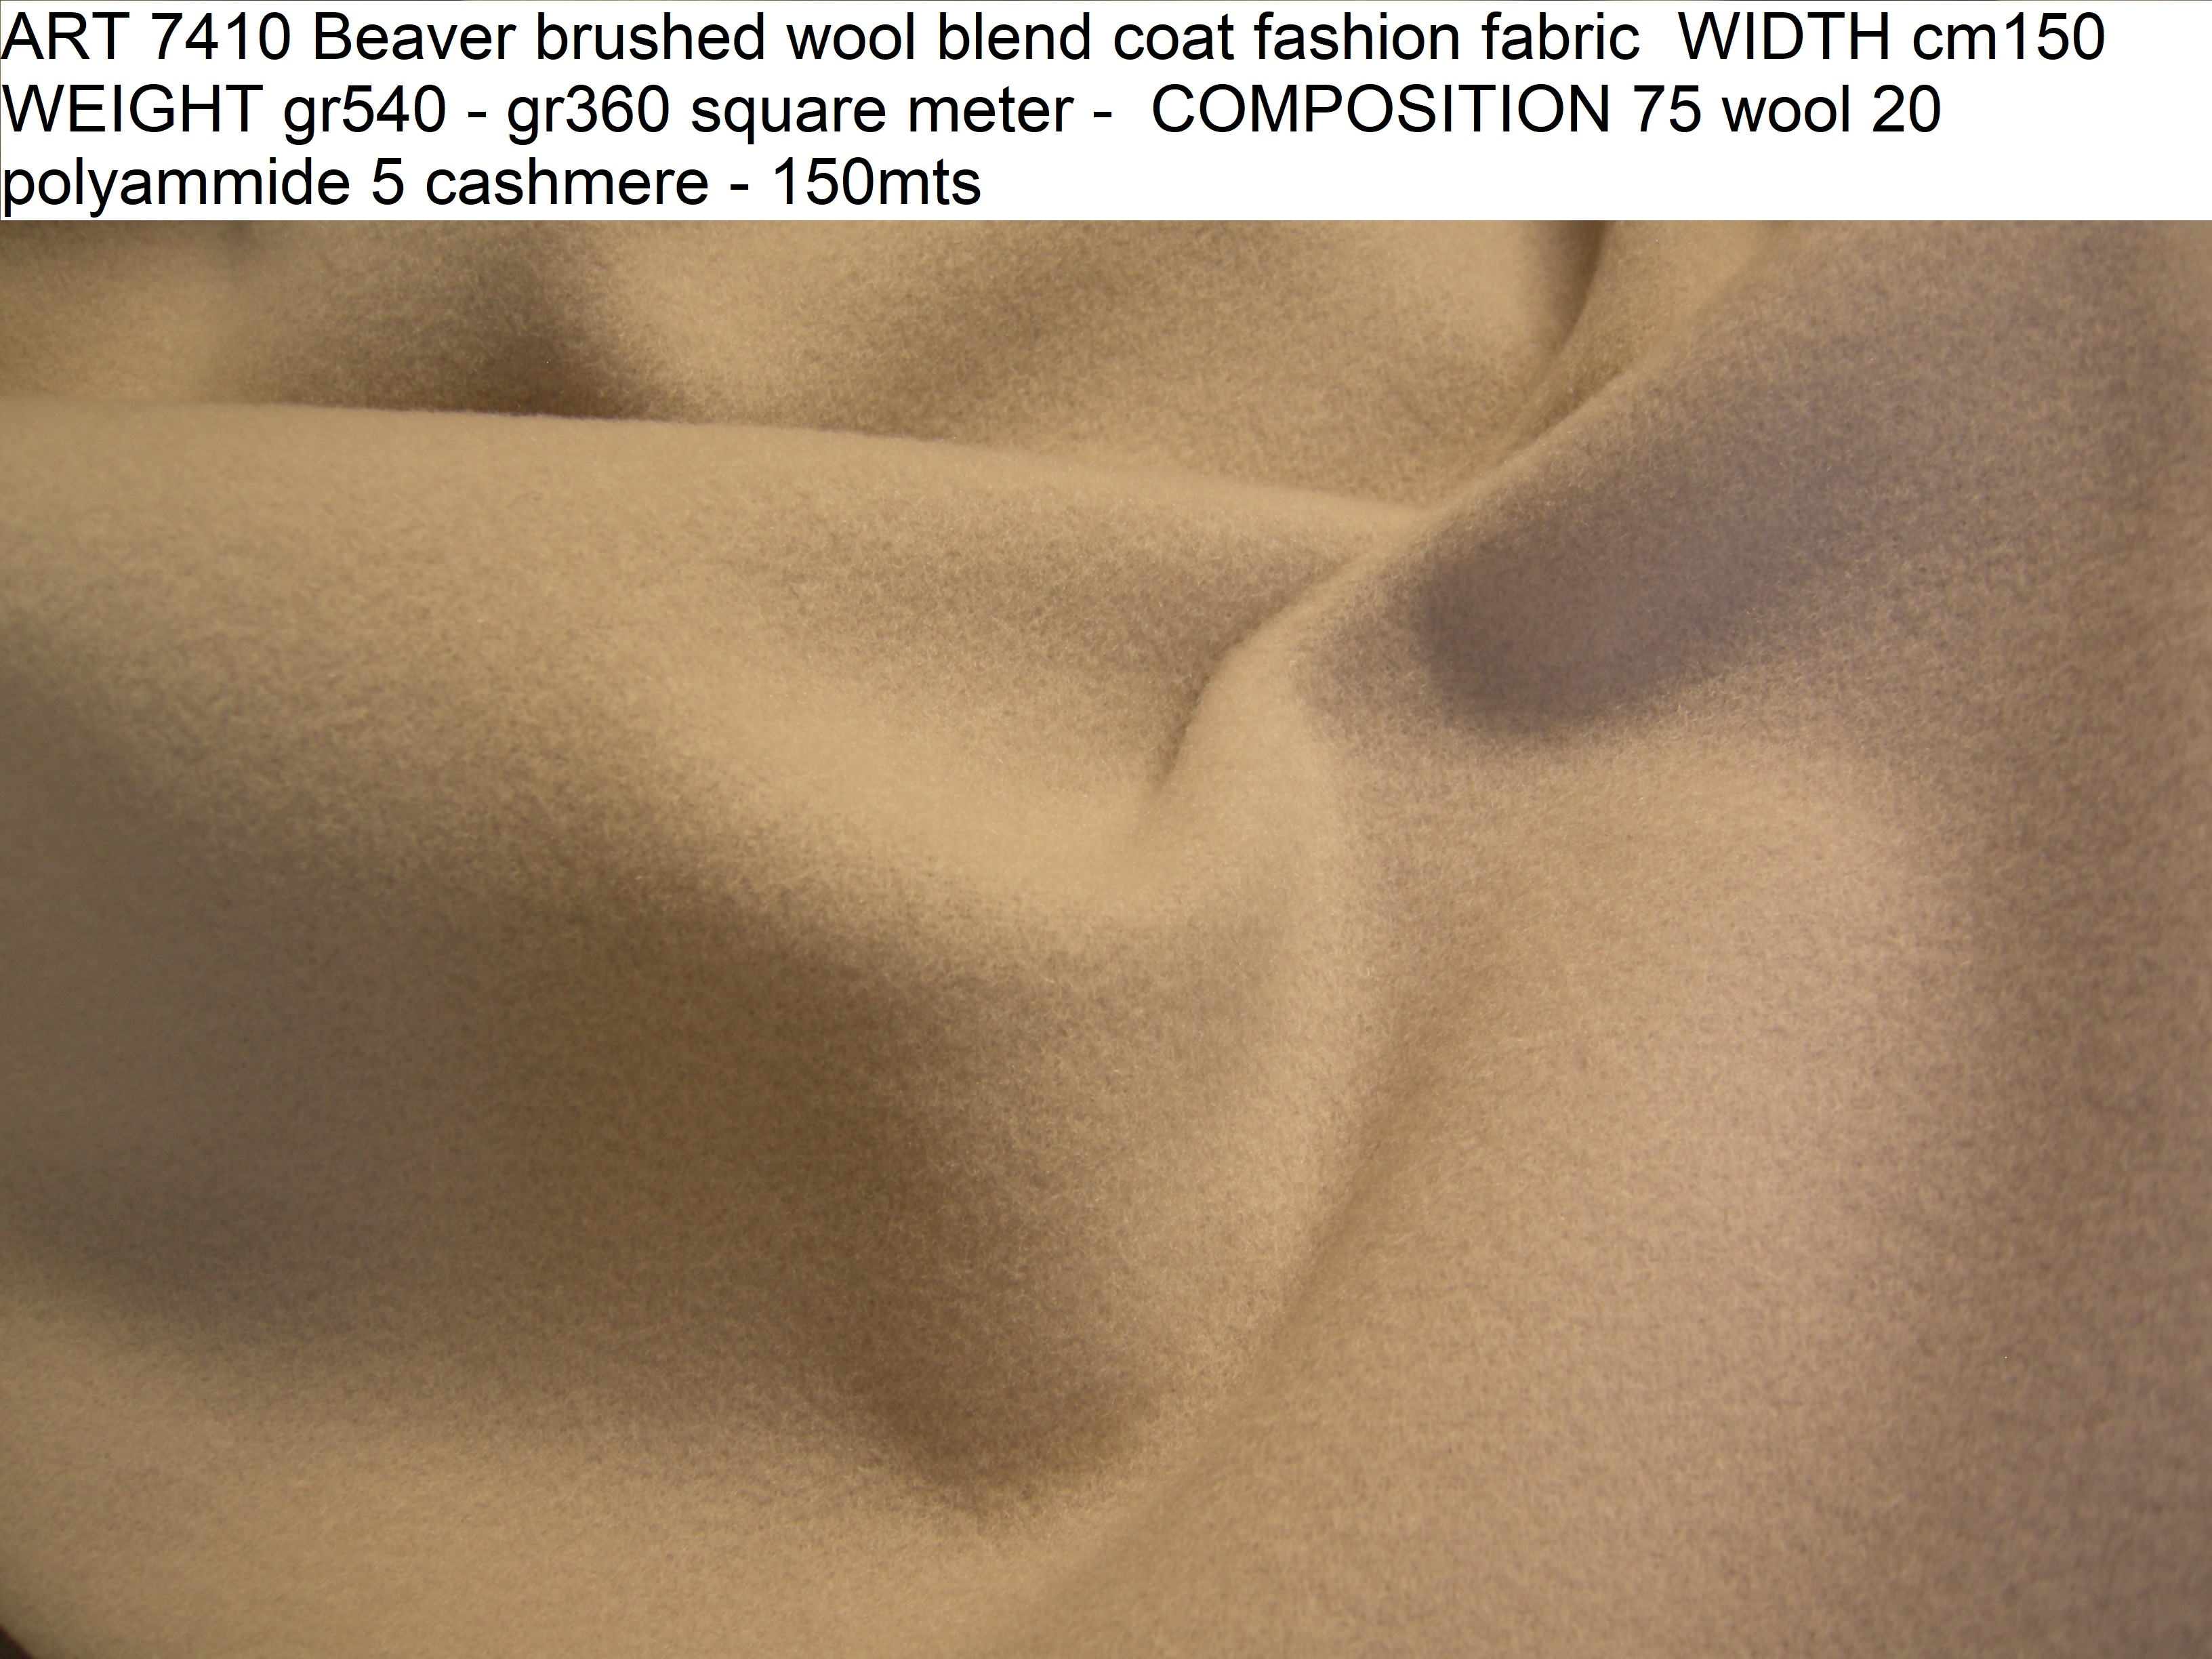 ART 7410 Beaver brushed wool blend coat fashion fabric WIDTH cm150 WEIGHT gr540 - gr360 square meter - COMPOSITION 75 wool 20 polyammide 5 cashmere - 150mts